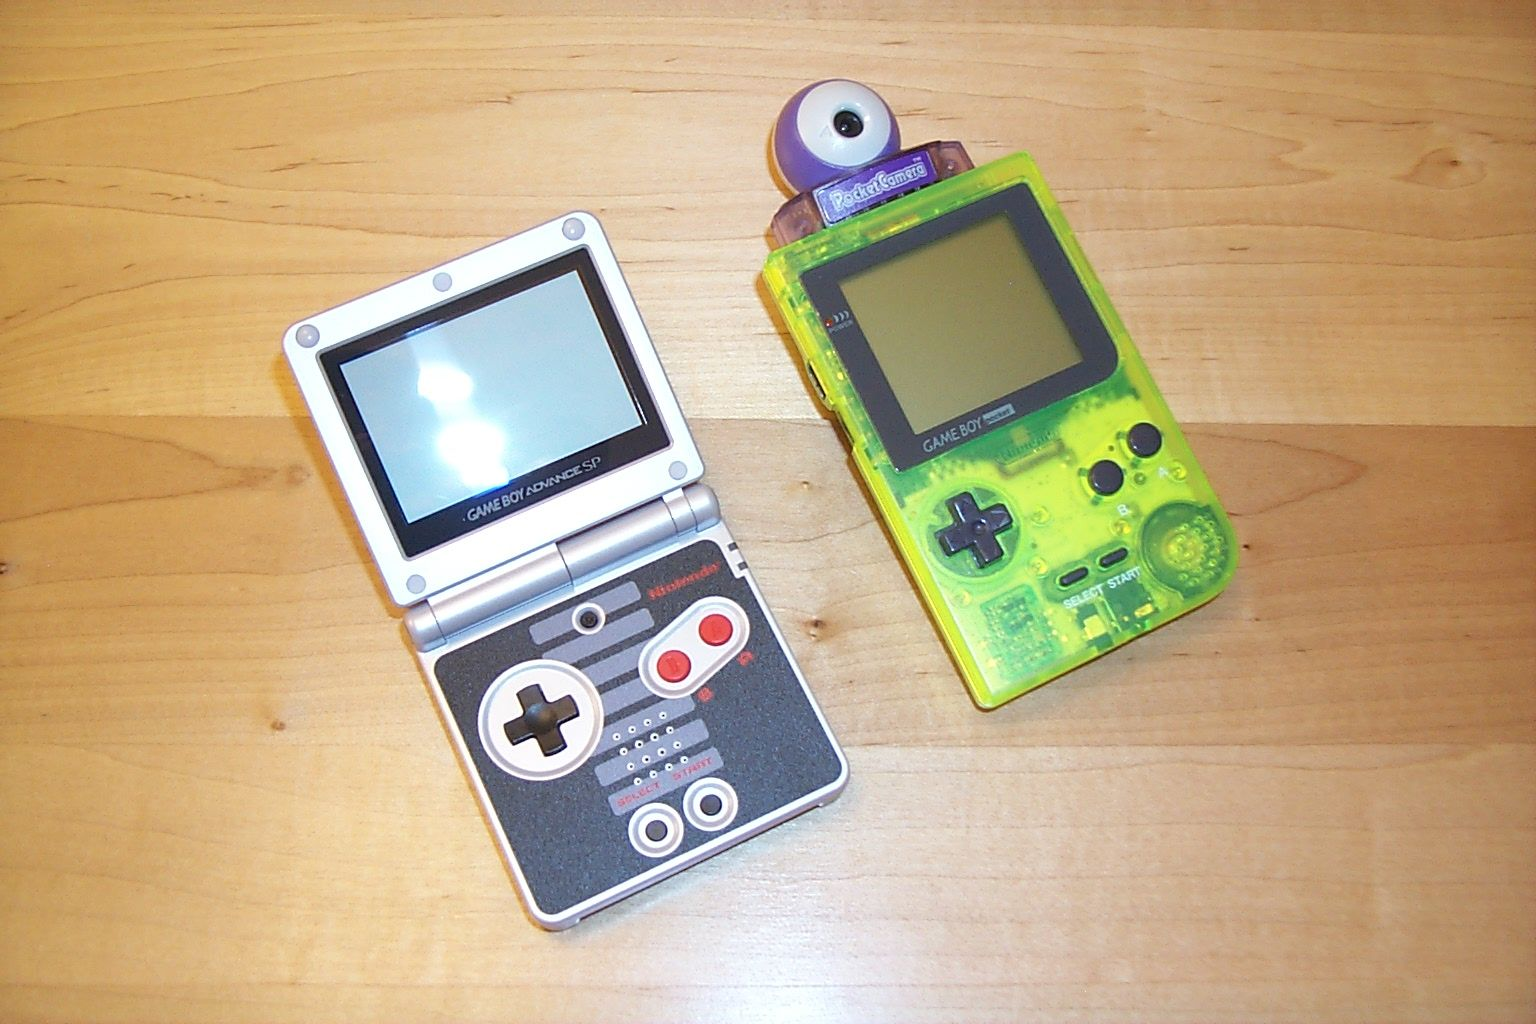 Game boy color online free - With S E Game Boy Pocket Japanese Gb Camera